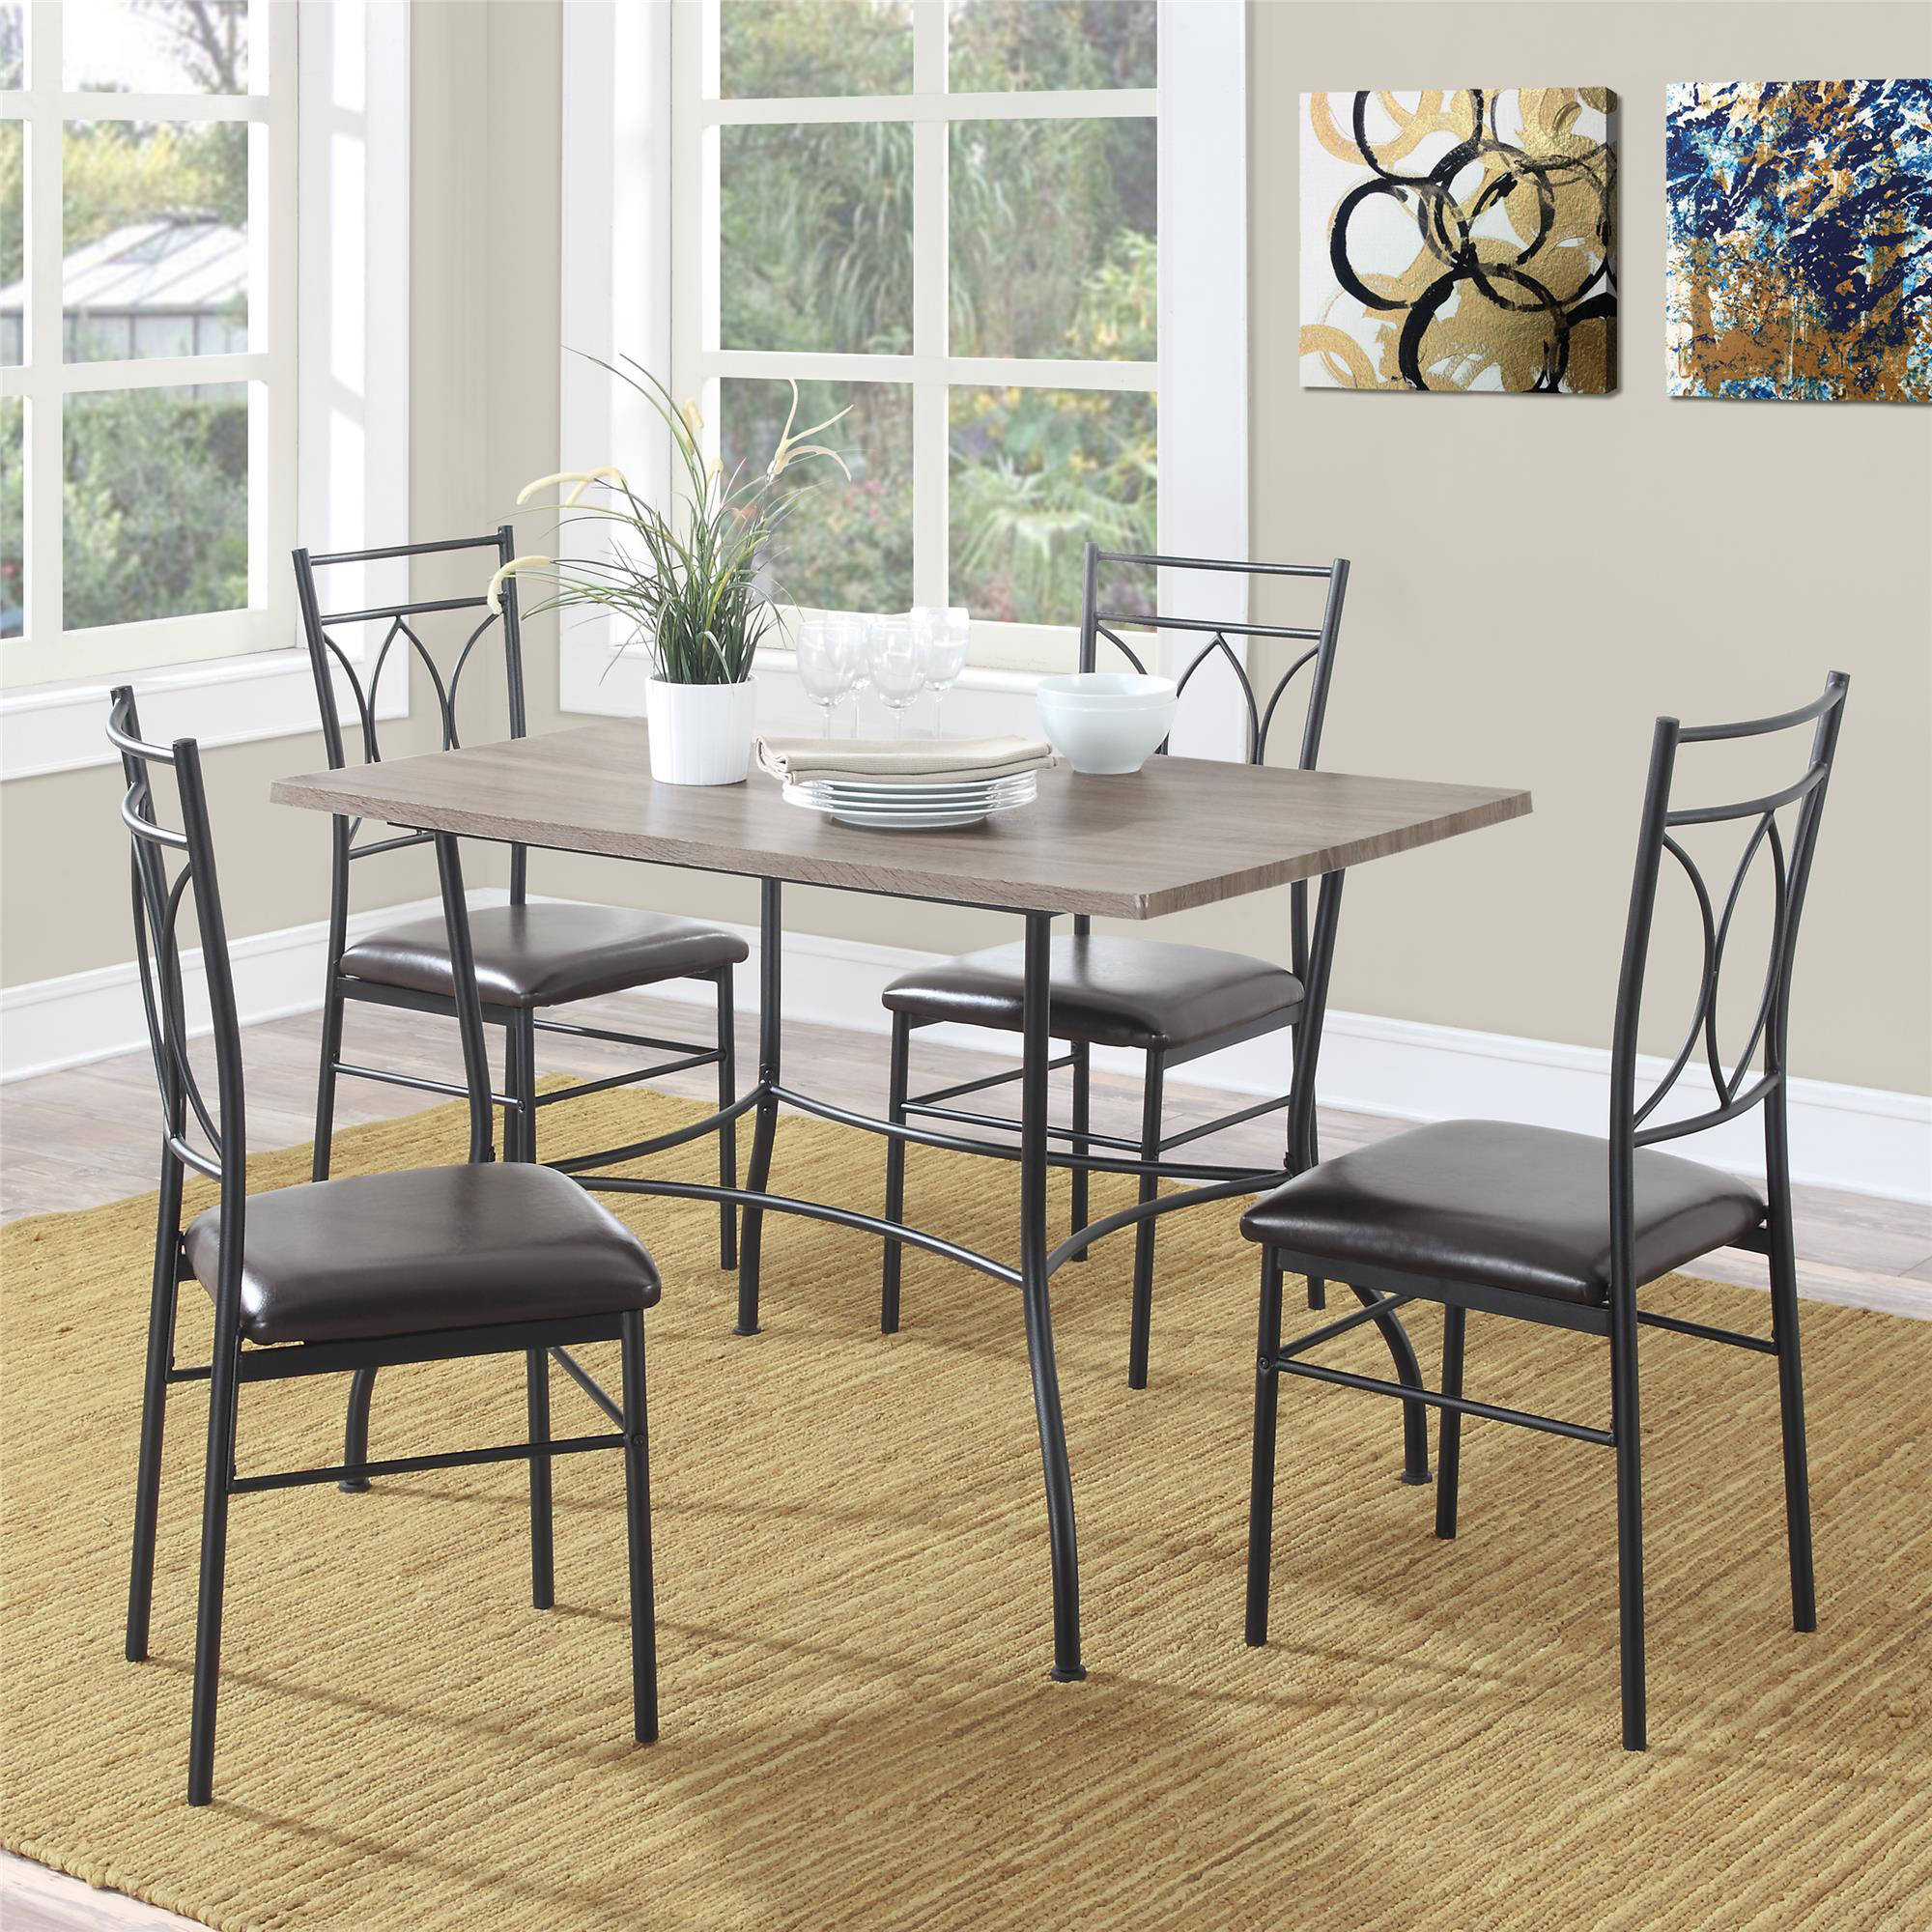 rustic wood kitchen table and chairs transfer shower for elderly dorel living shelby 5 piece metal dining set walmart com